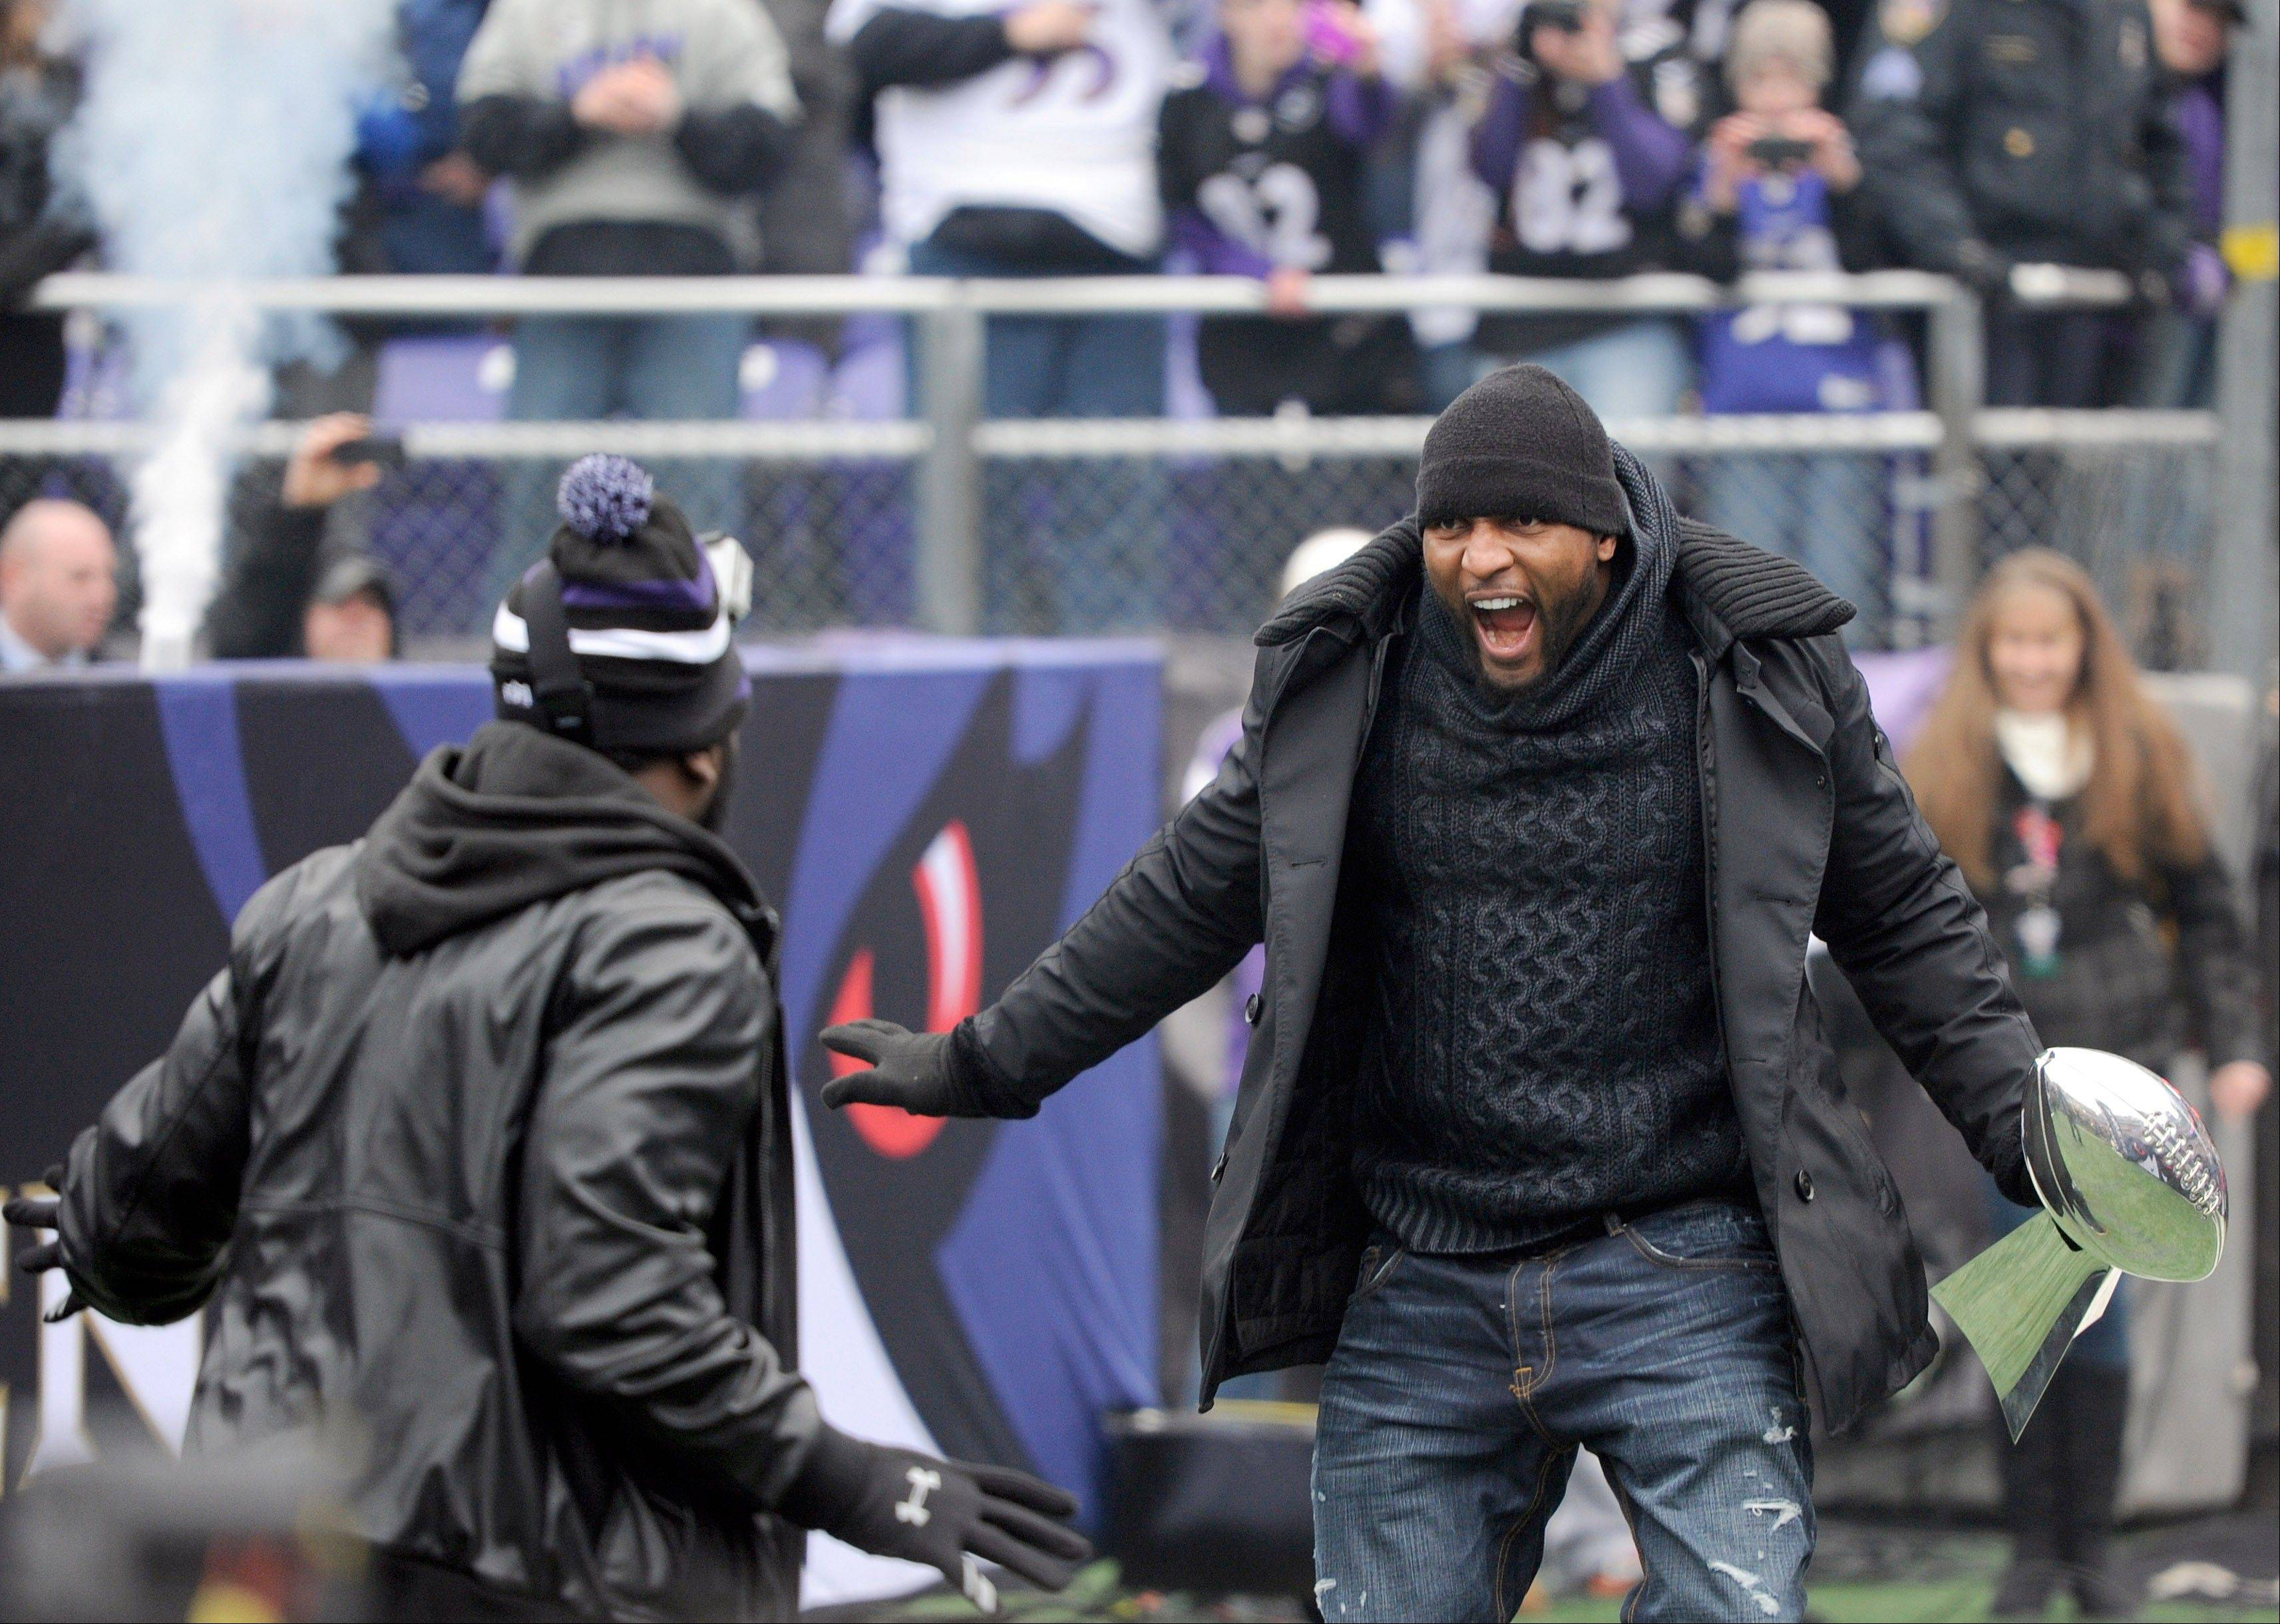 Baltimore Ravens linebacker Ray Lewis, right, and safety Ed Redd dance during a championship celebration at the team's stadium in Baltimore, Tuesday, Feb. 5, 2013. The Ravens defeated the San Francisco 49ers in NFL football's Super Bowl XLVII 34-31 on Sunday.